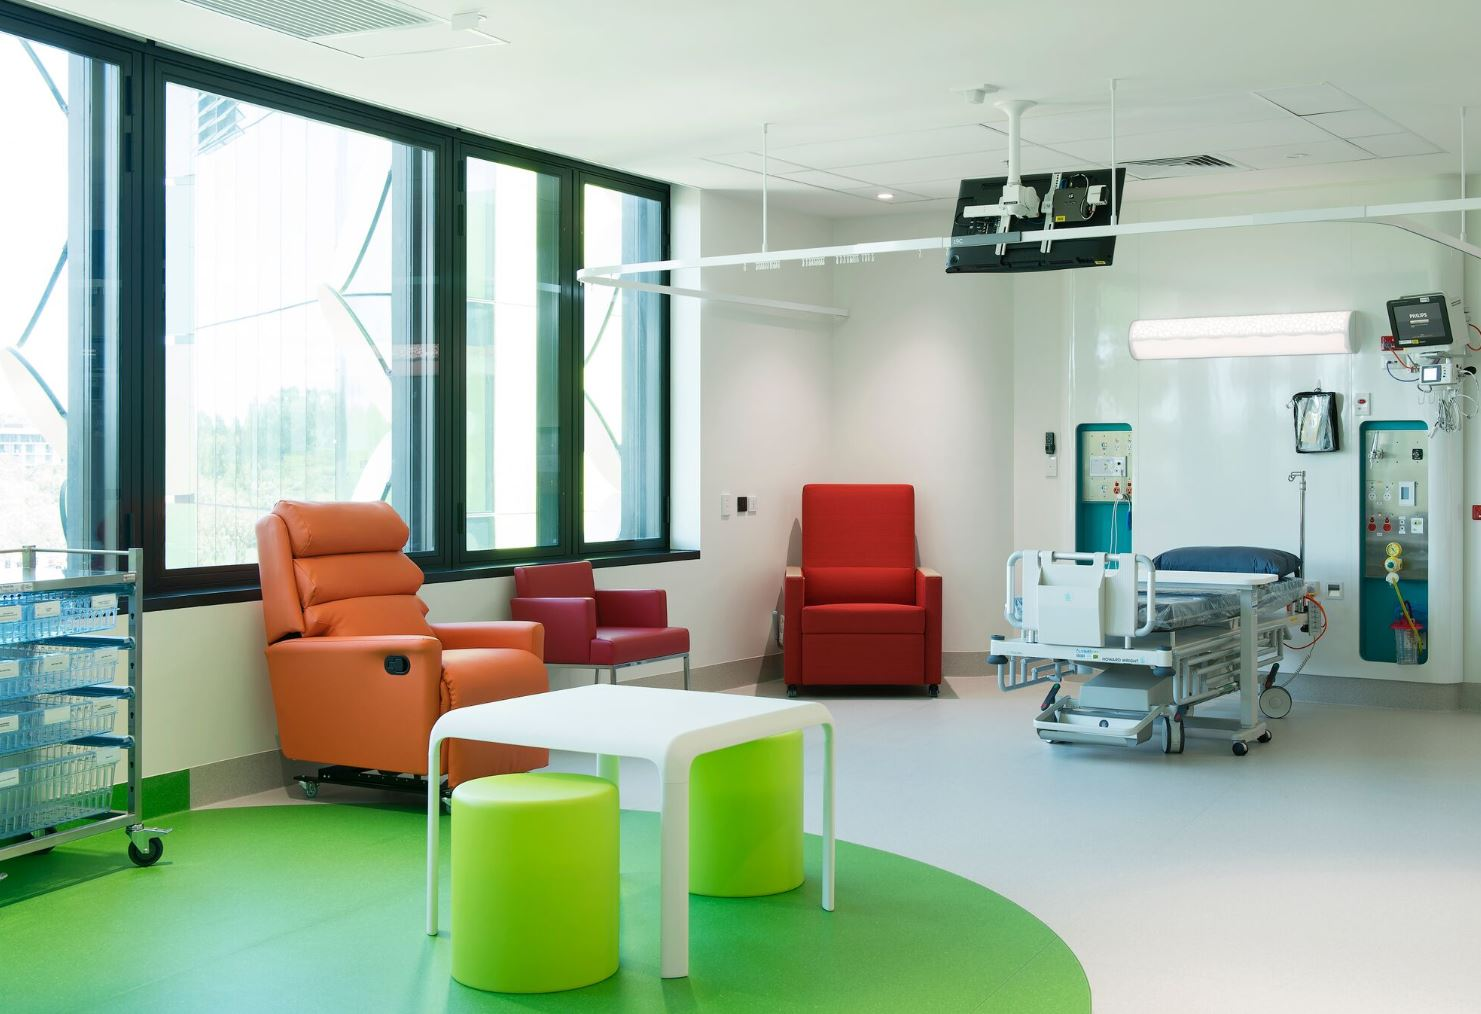 Perth Children's Hospital – Innerspace